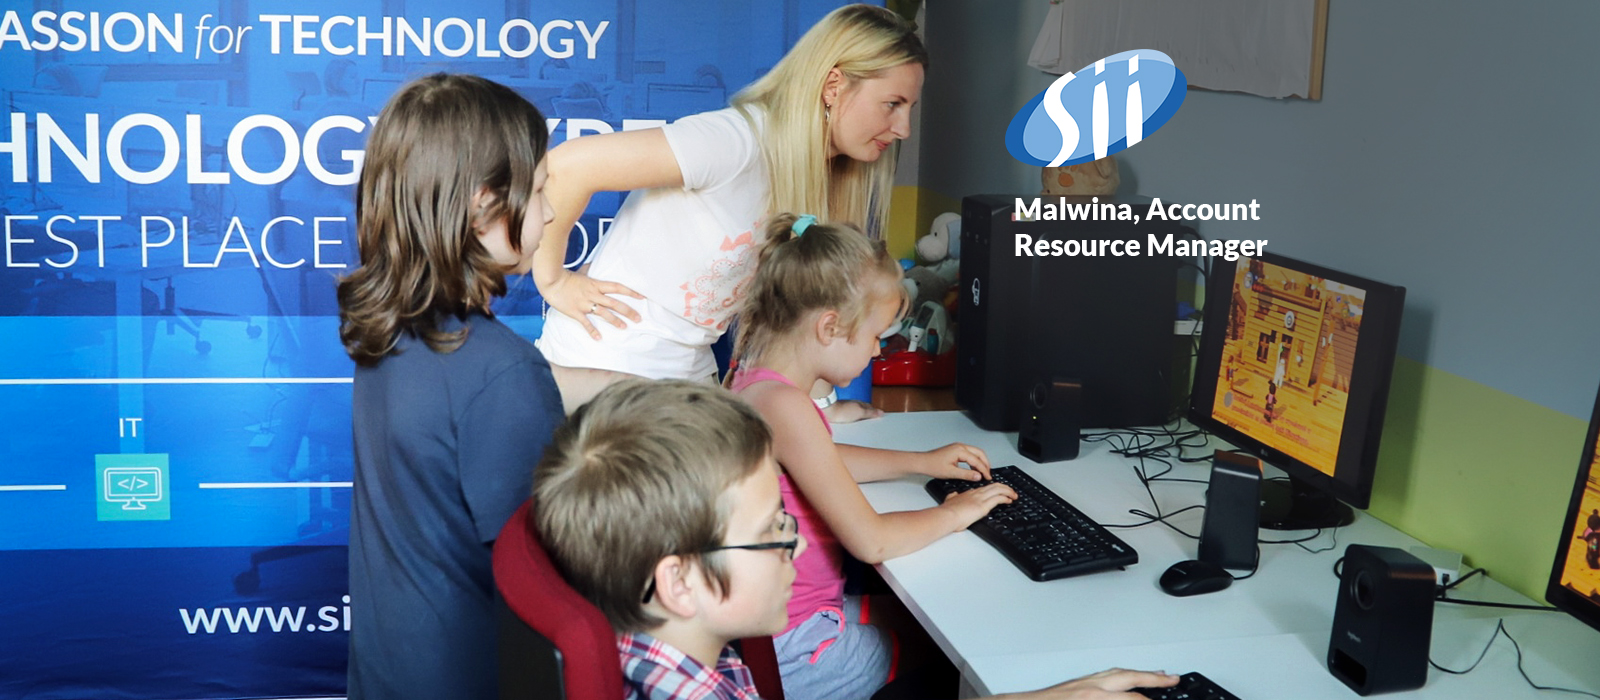 Knowledge sharing gives joy – Sii Power Volunteers run IT classes for kids